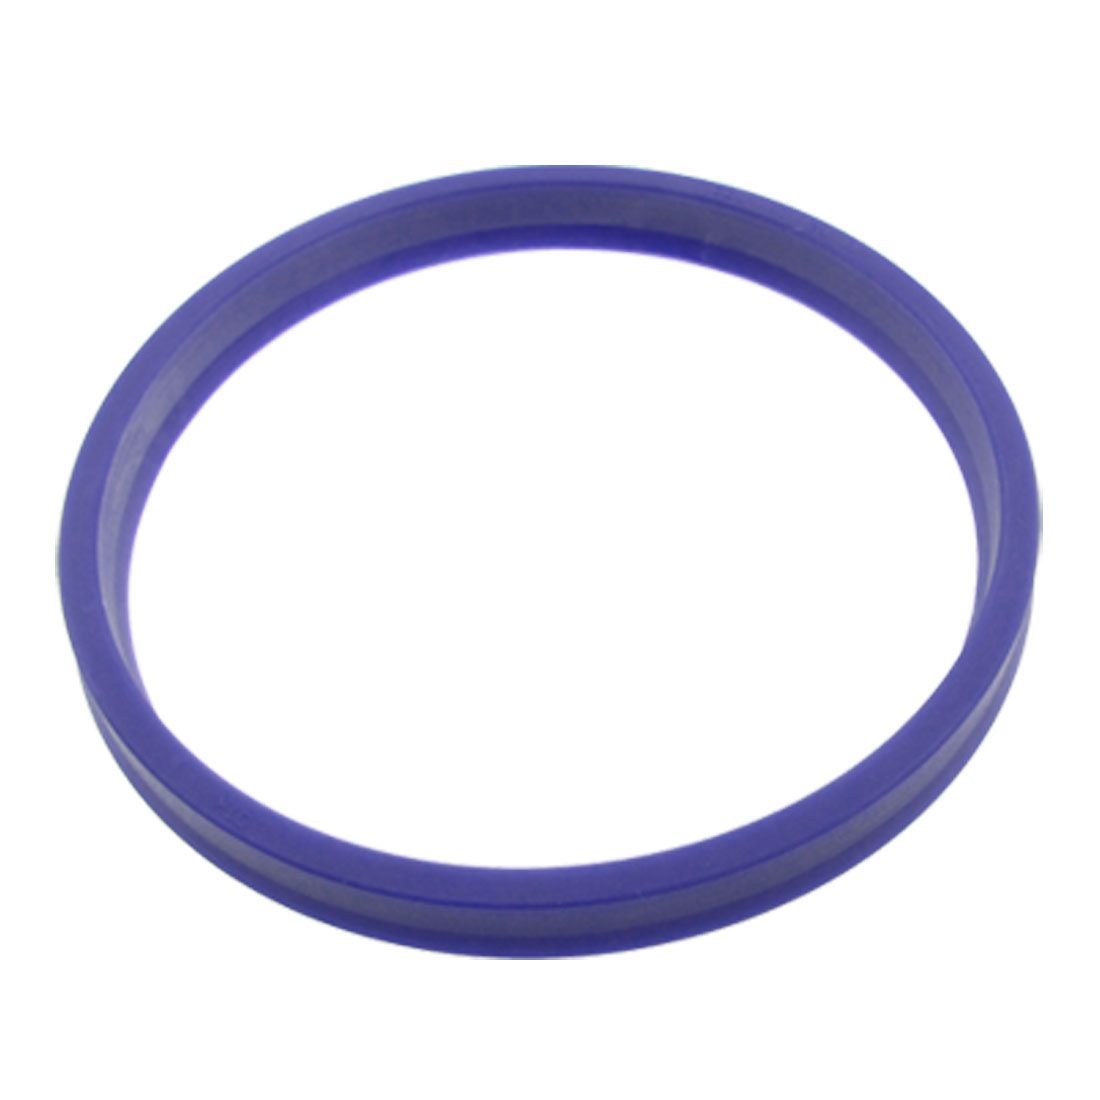 Auto Car Piston PU Grease Oil Seal Sealing Ring Blue ODU 128x140x14mm